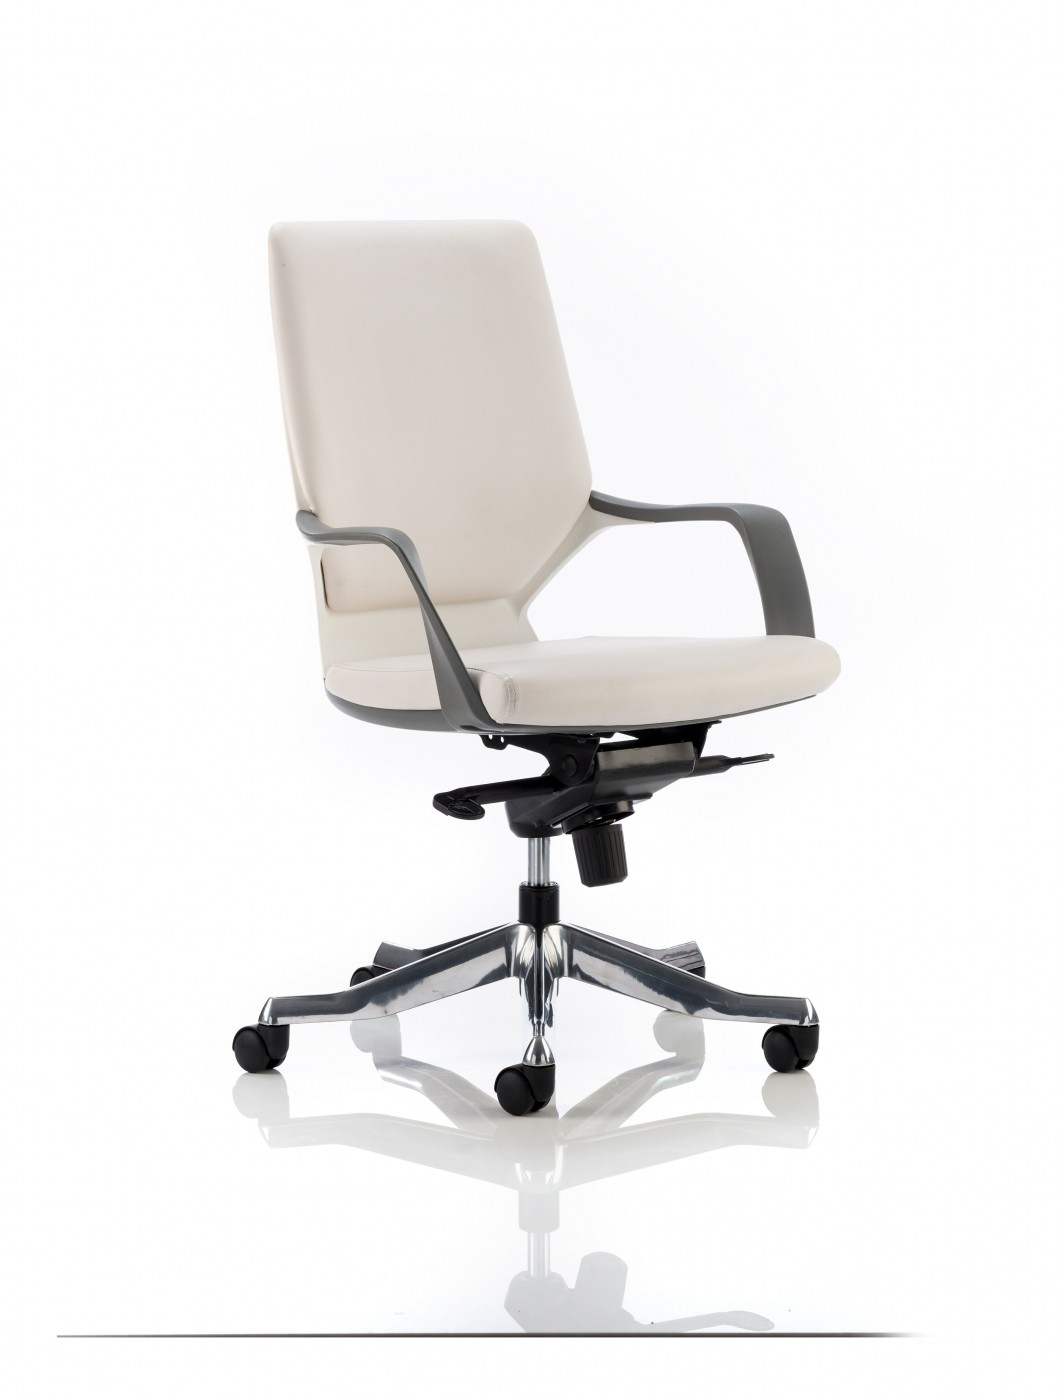 office chair white leather. Dynamic Xenon Medium Executive White Leather Office Chair - Enlarged View O